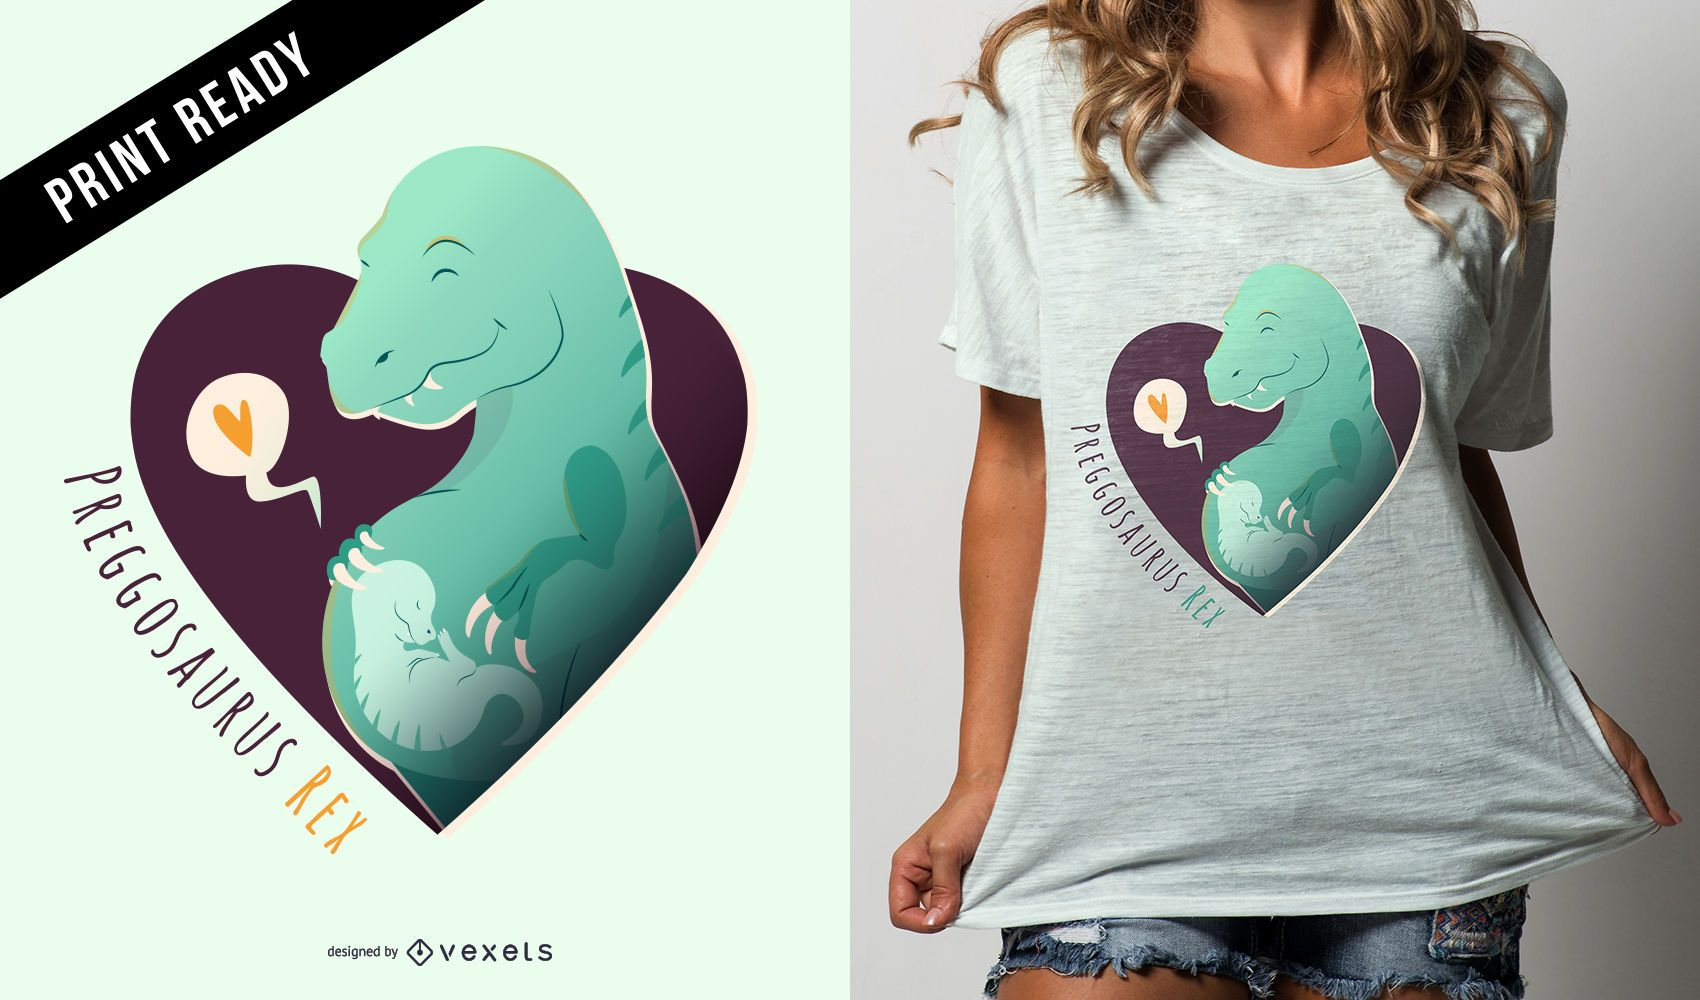 1b06a6f2 Preggosaurus Rex Funny Pregnancy T-shirt Design. Download Large Image  1700x1000px. license image; user